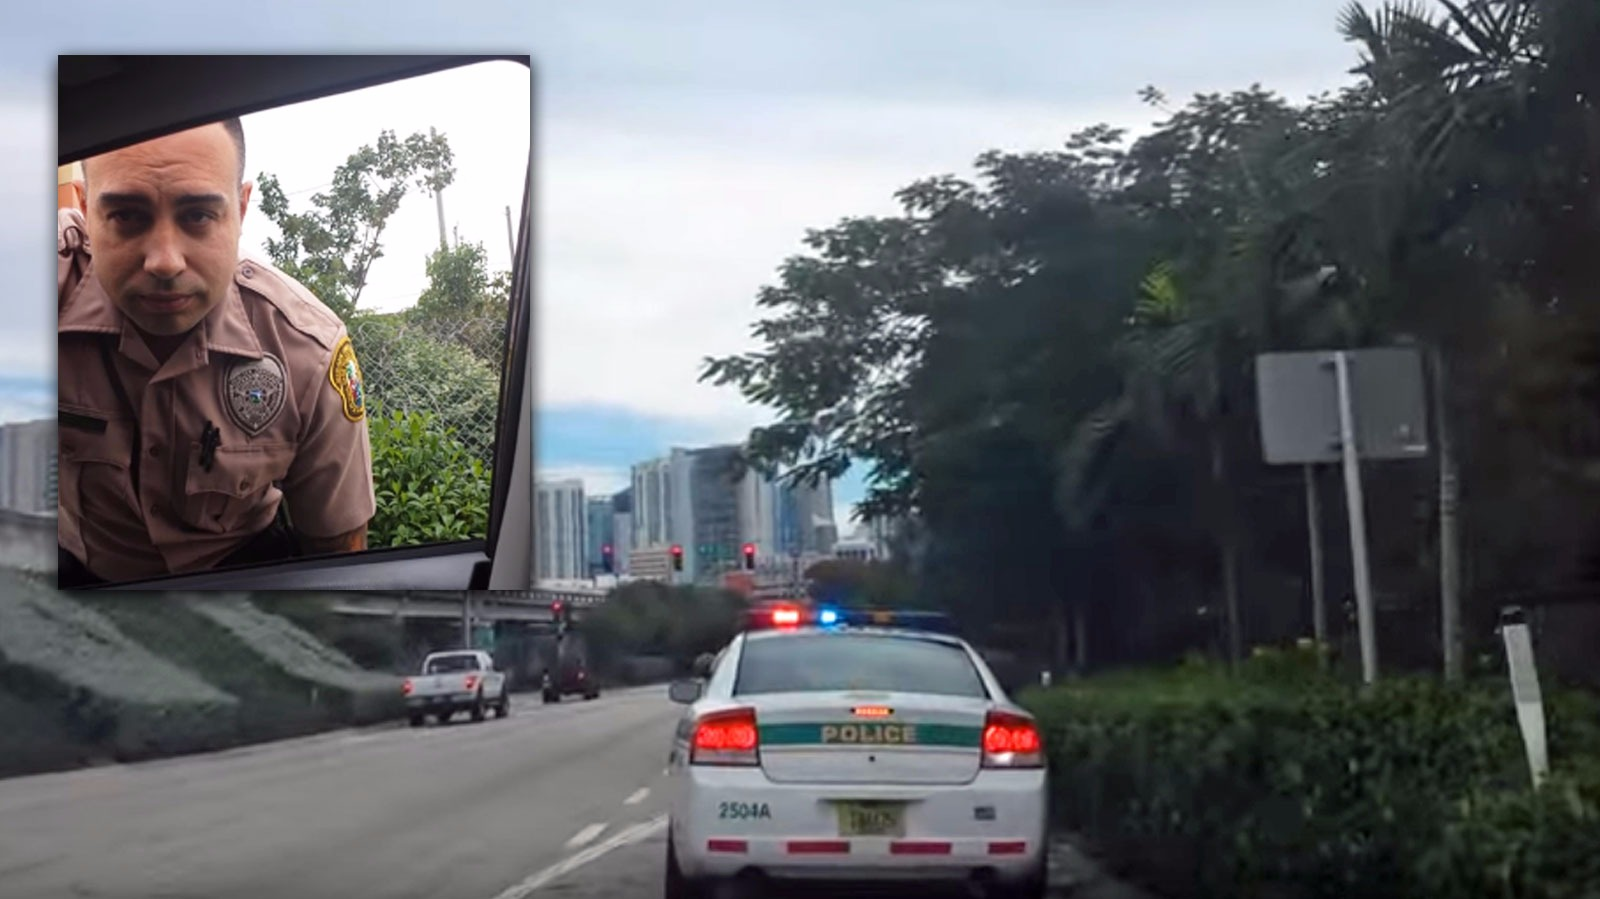 Pulled Over By Cops : A fair cop police officer is pulled over for speeding